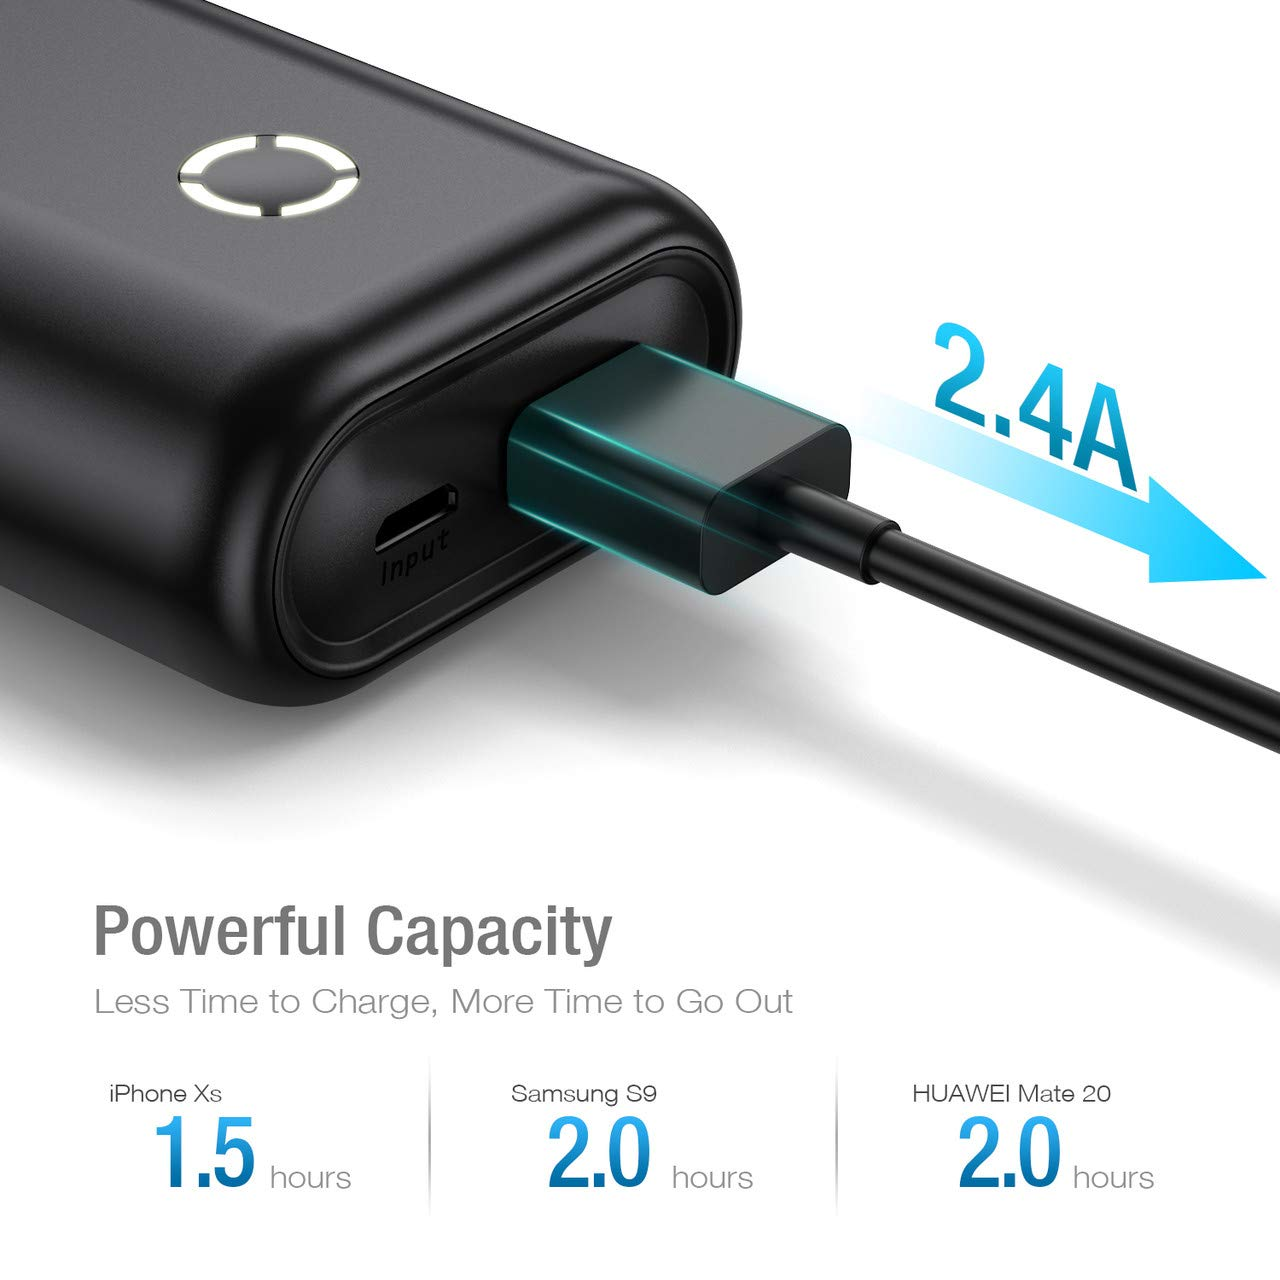 Poweradd EnergyCell 10000, Portable Charger Power Bank,The Smallest and Lightest 10000mAh External Batteries, Power Bank with Smart Charge Compatible for Smartphone,iPhone, Samsung Galaxy and More